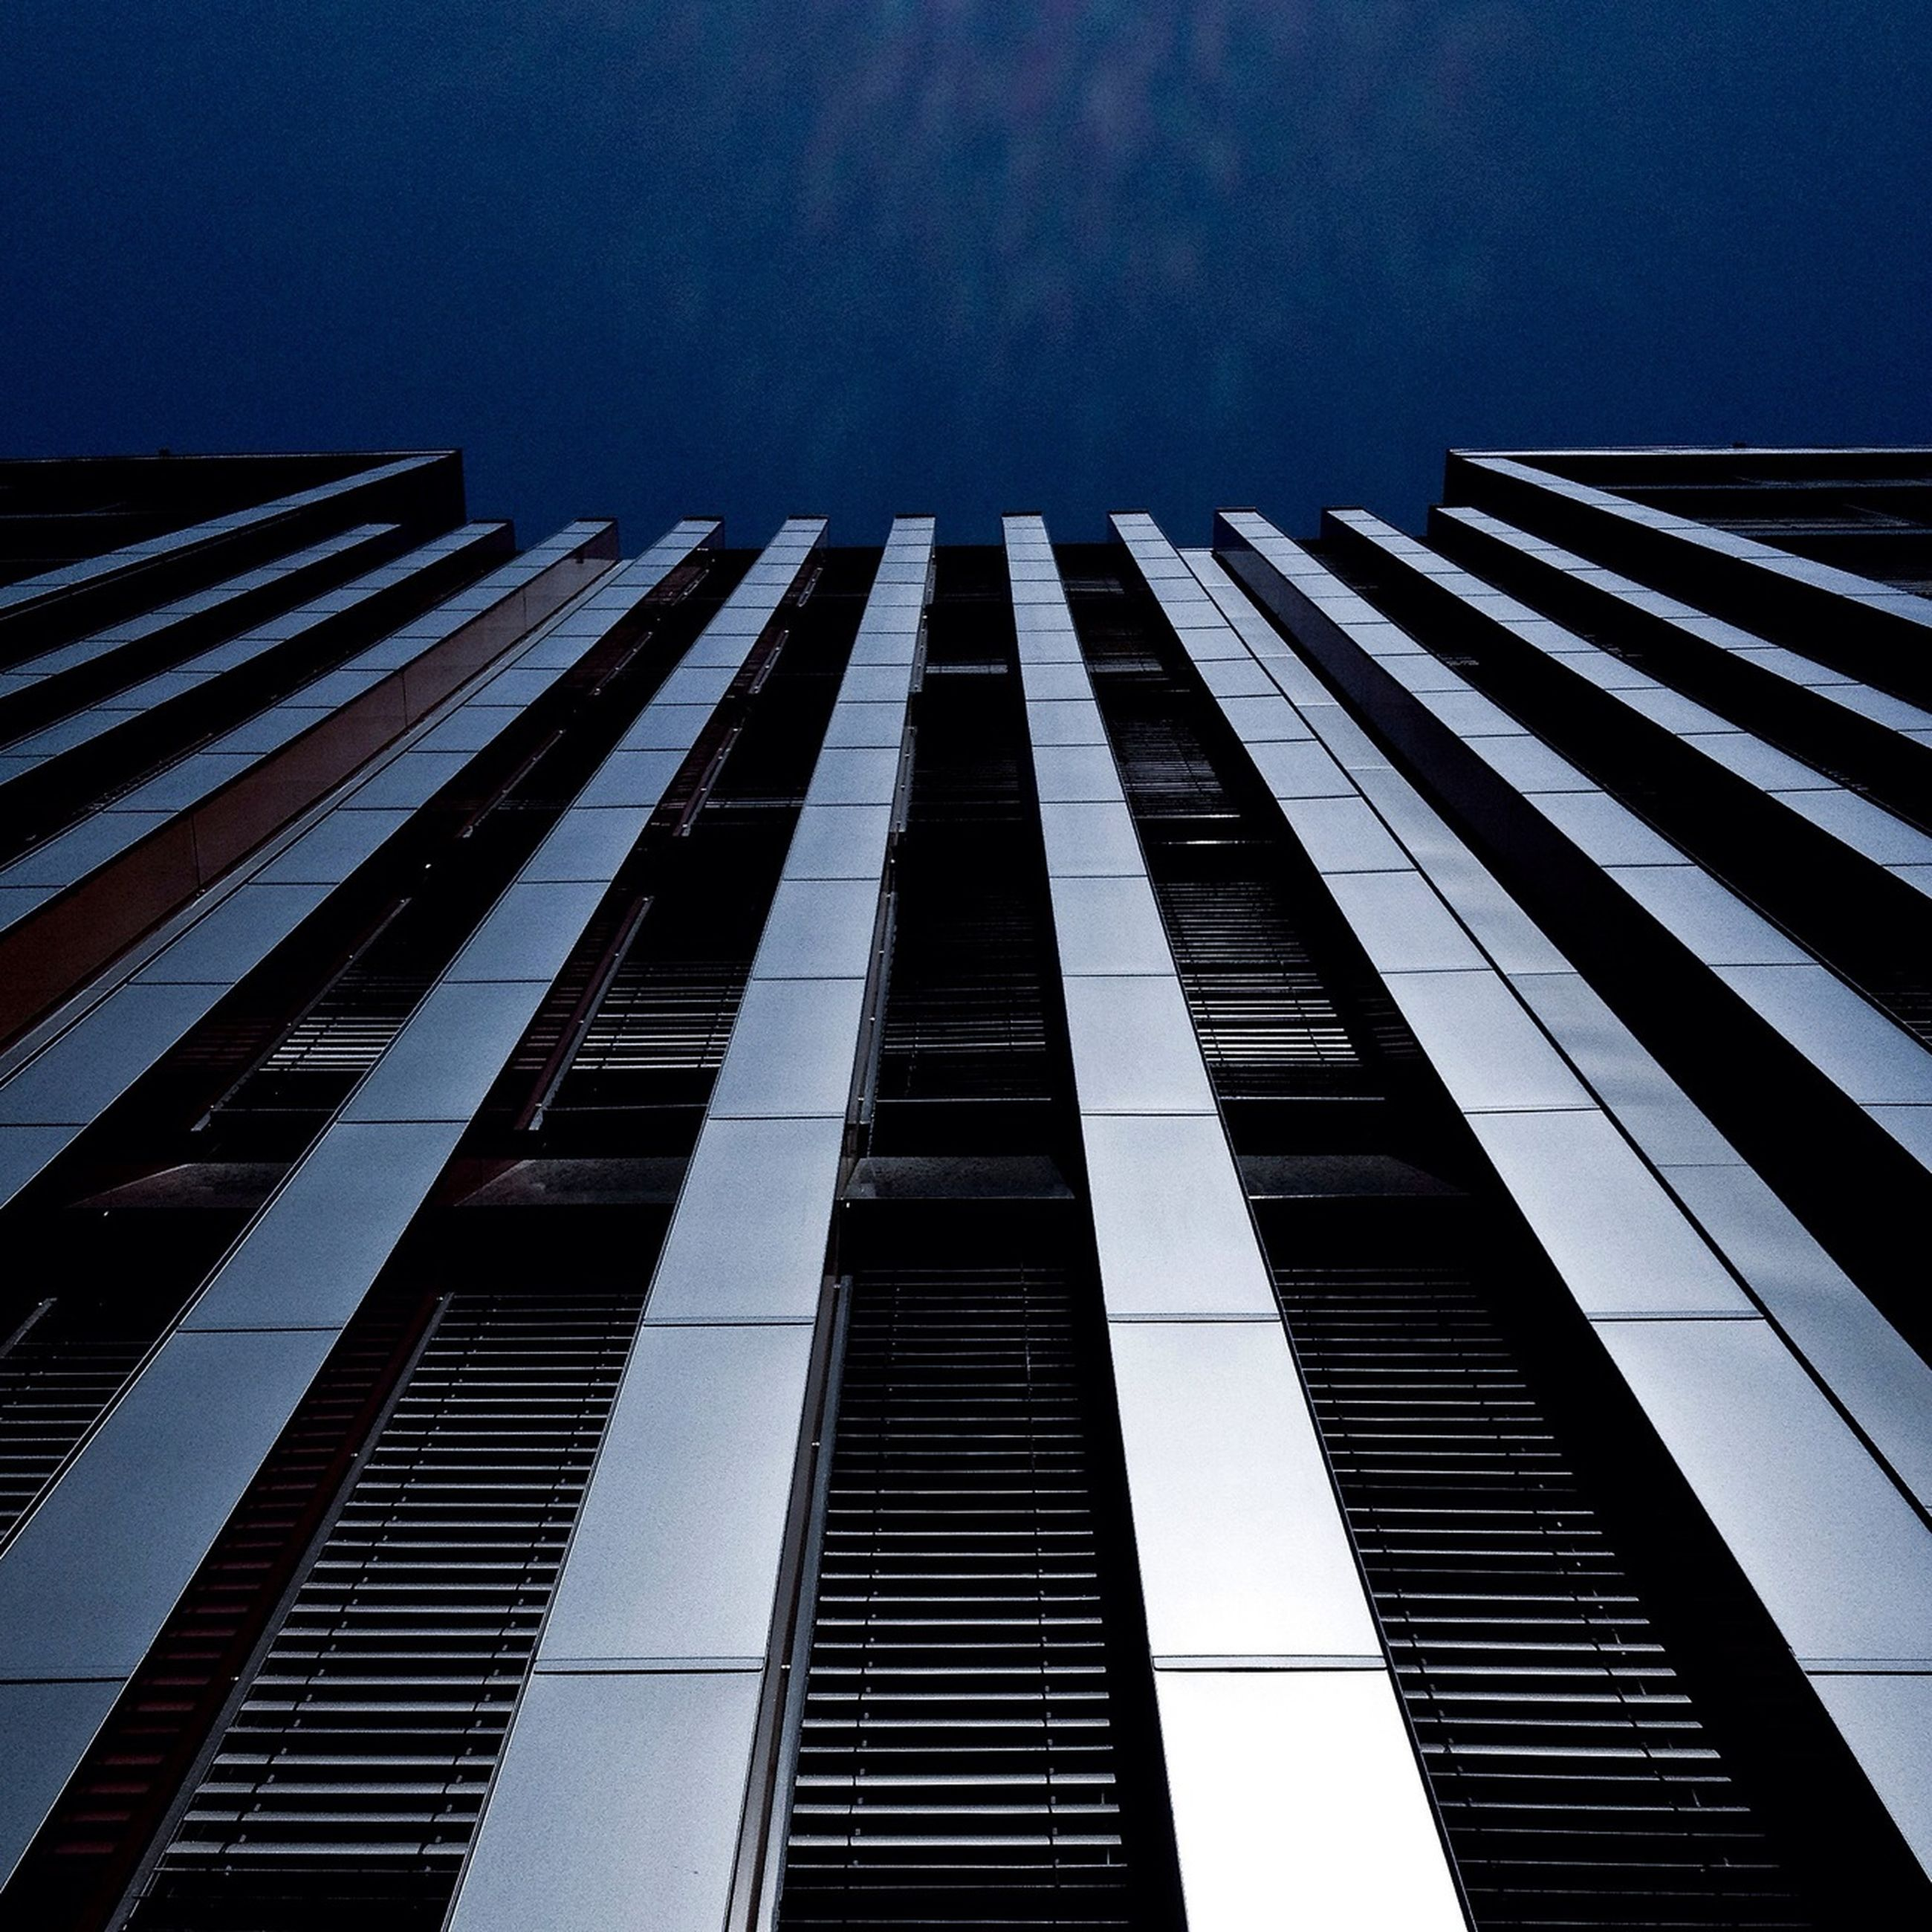 low angle view, architecture, built structure, building exterior, modern, office building, skyscraper, tall - high, city, tower, sky, building, glass - material, tall, reflection, outdoors, blue, day, no people, city life